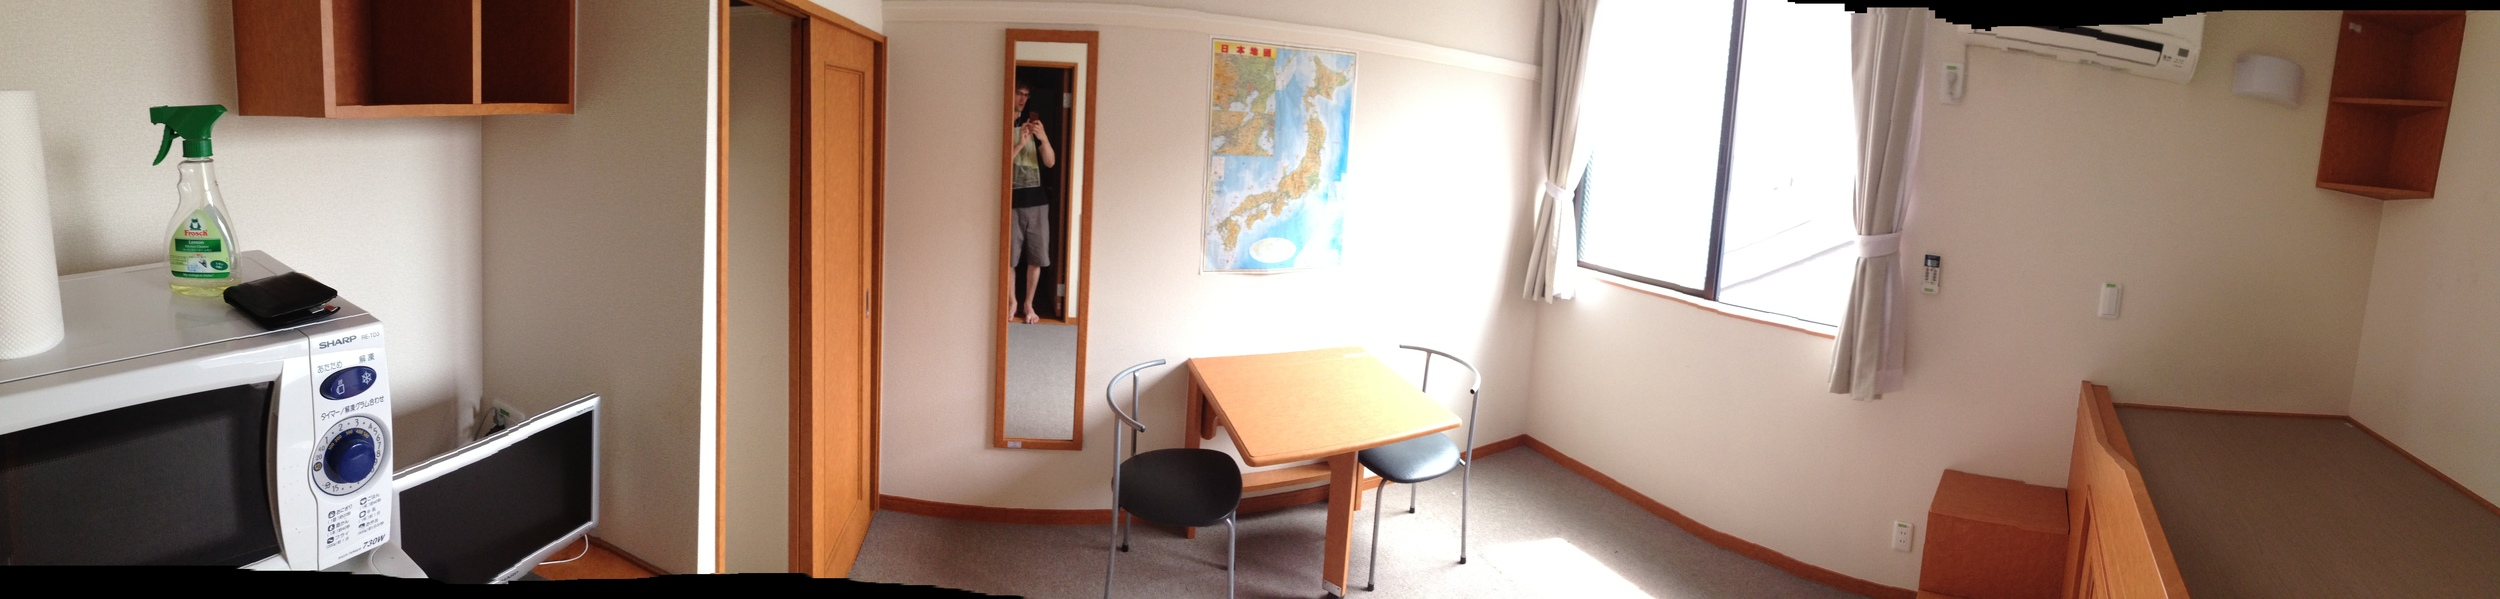 My small apartment in Ikeda.